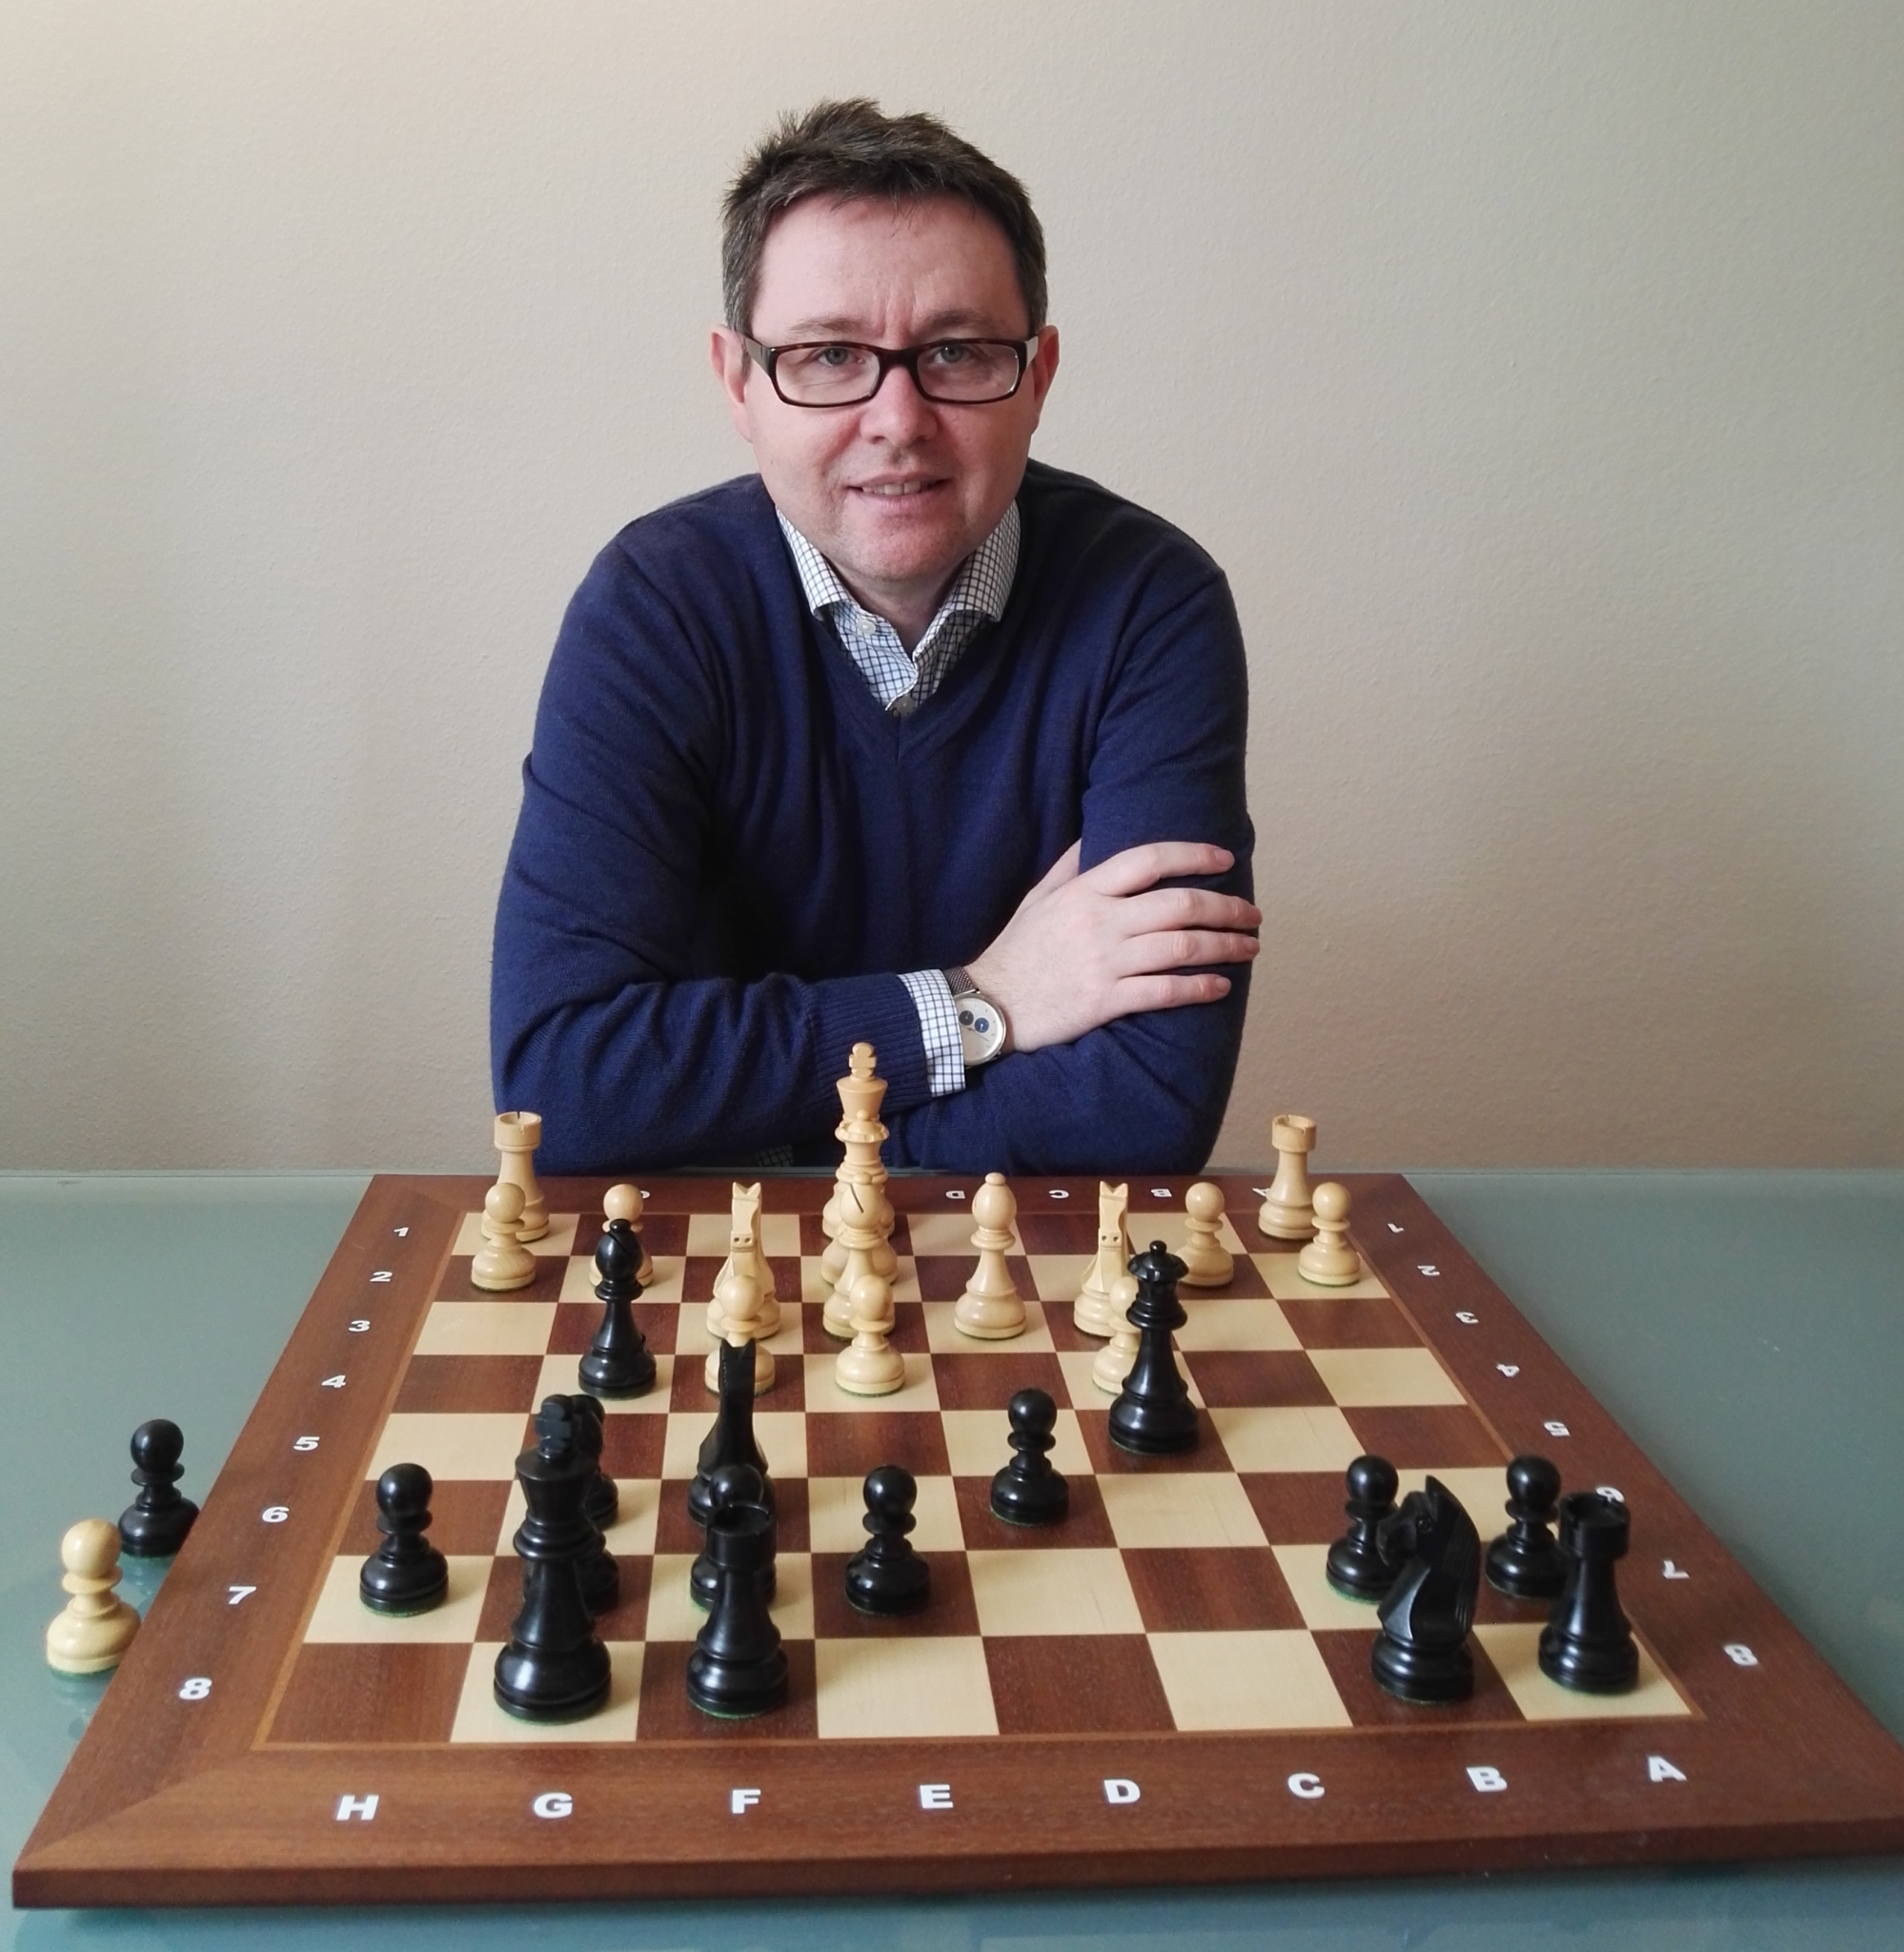 60 Min. Personal Chess Lesson with FIDE Master Barth